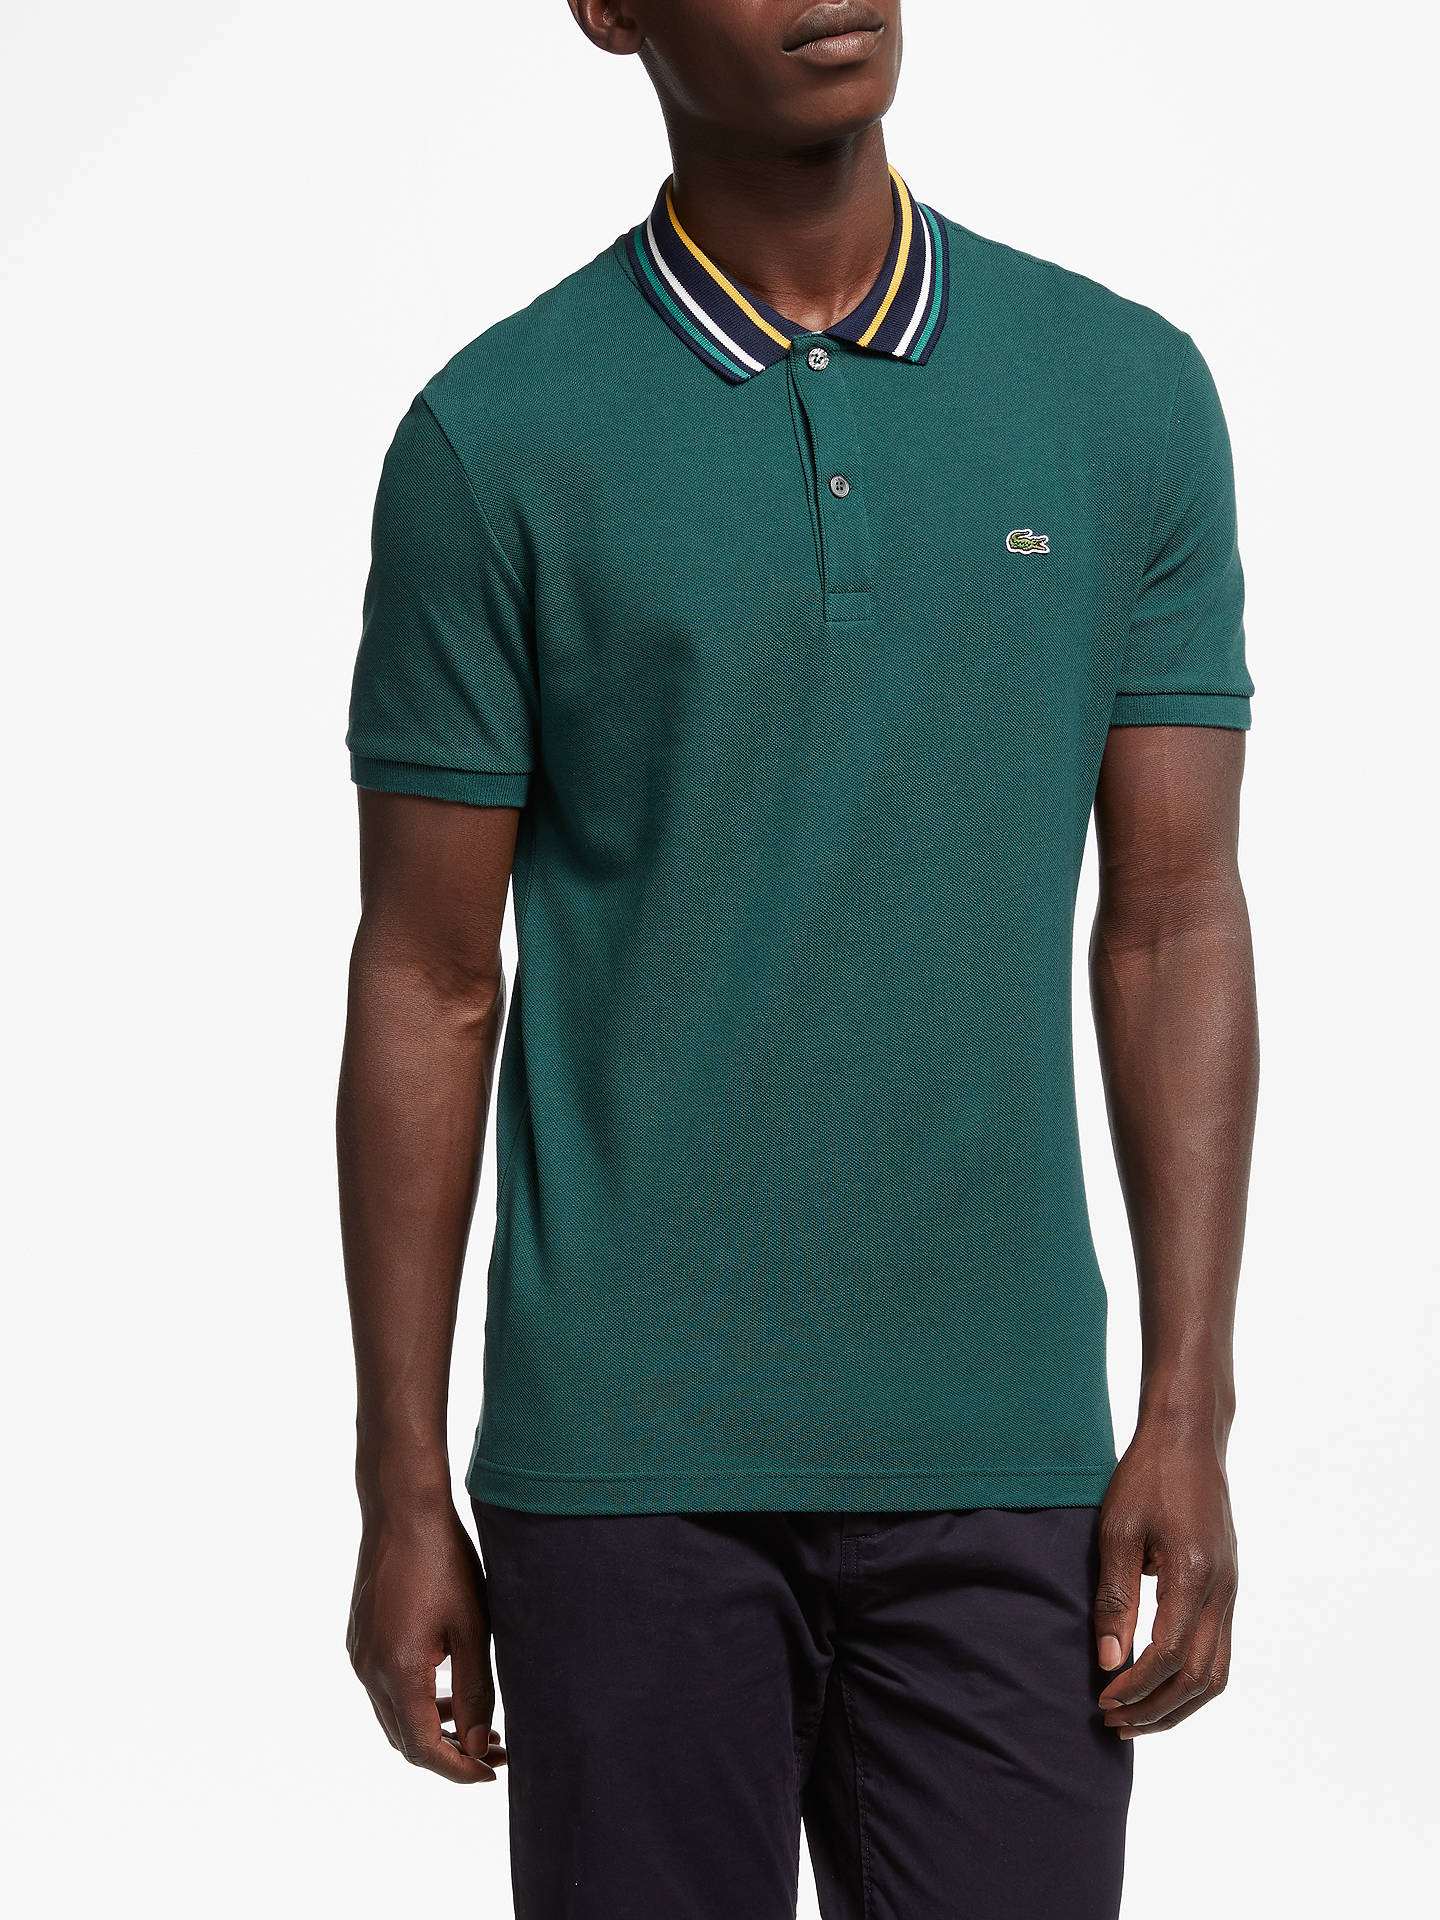 db96bcfb46 Buy Lacoste Triple Tipped Short Sleeve Polo Shirt, Green, S Online at  johnlewis.